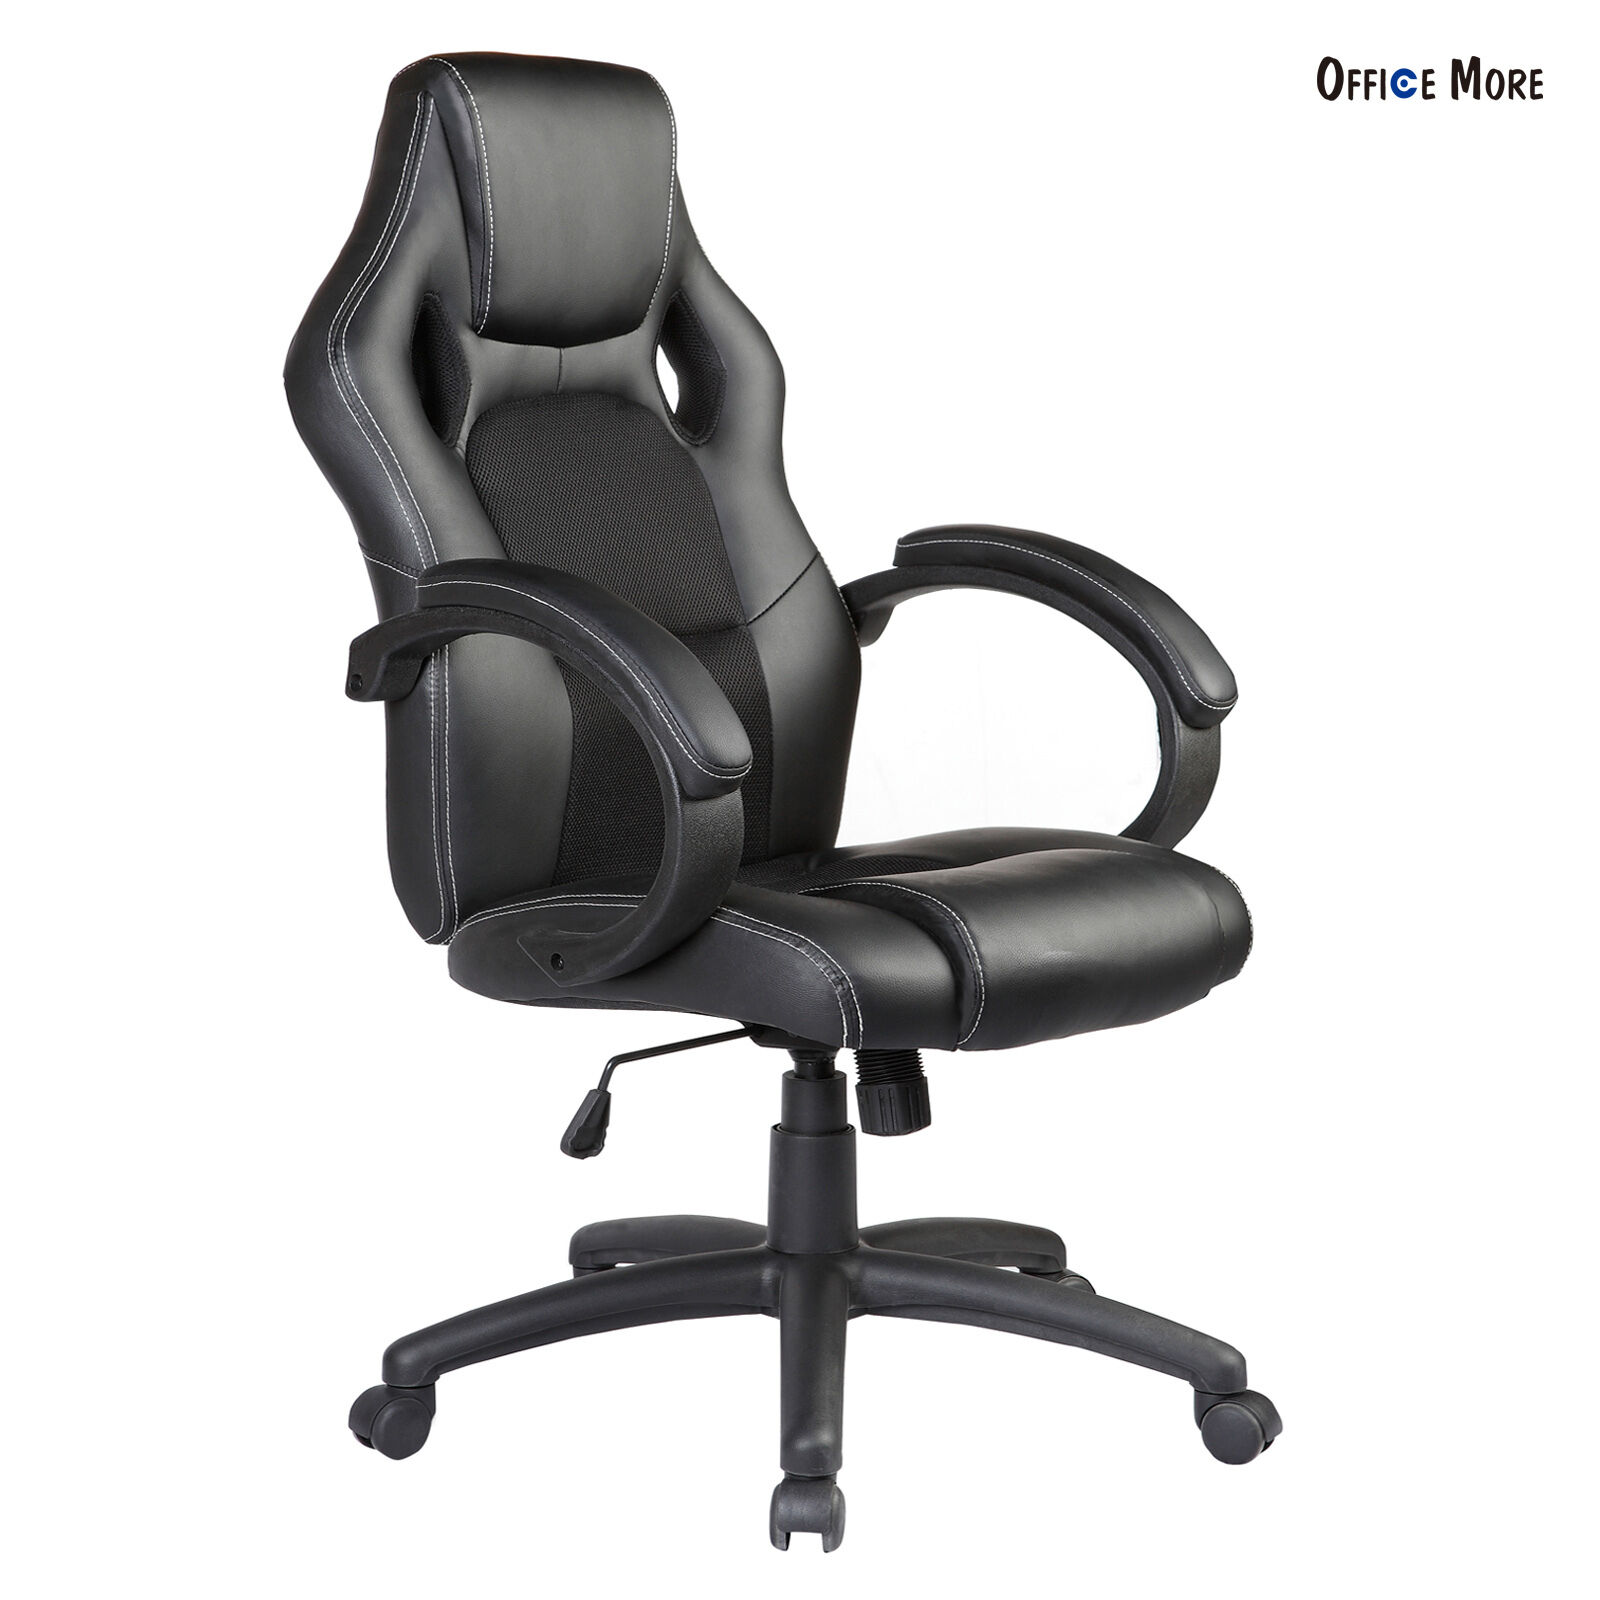 Racing Office Chair EBay - Recaro desk chair